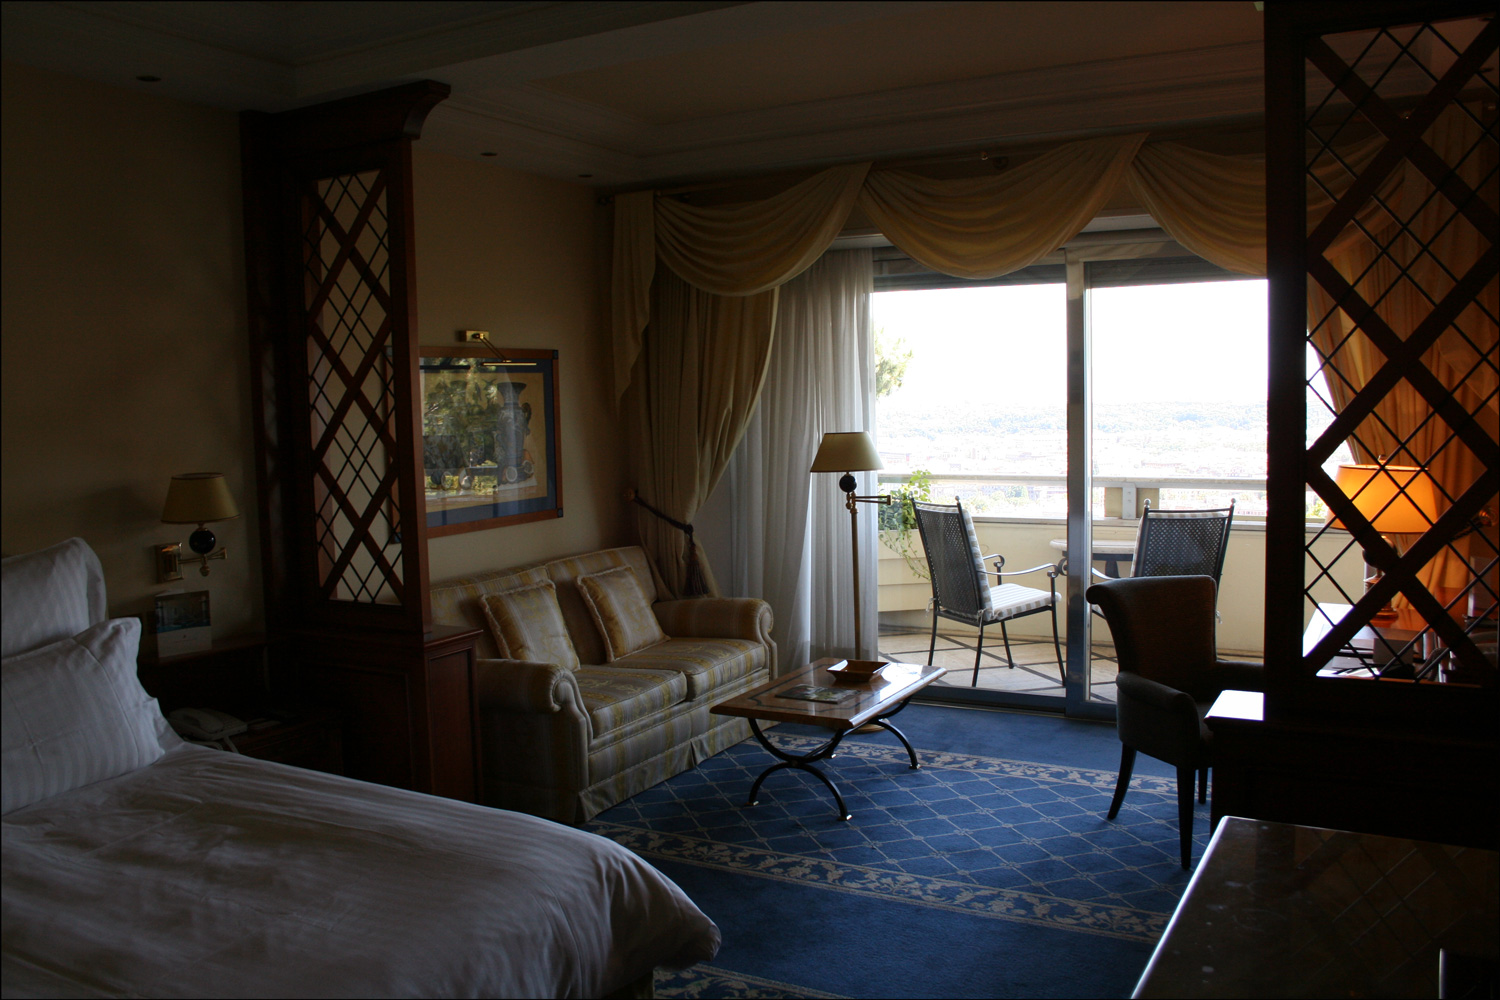 Room in the Rome Cavalieri Hotel - Window